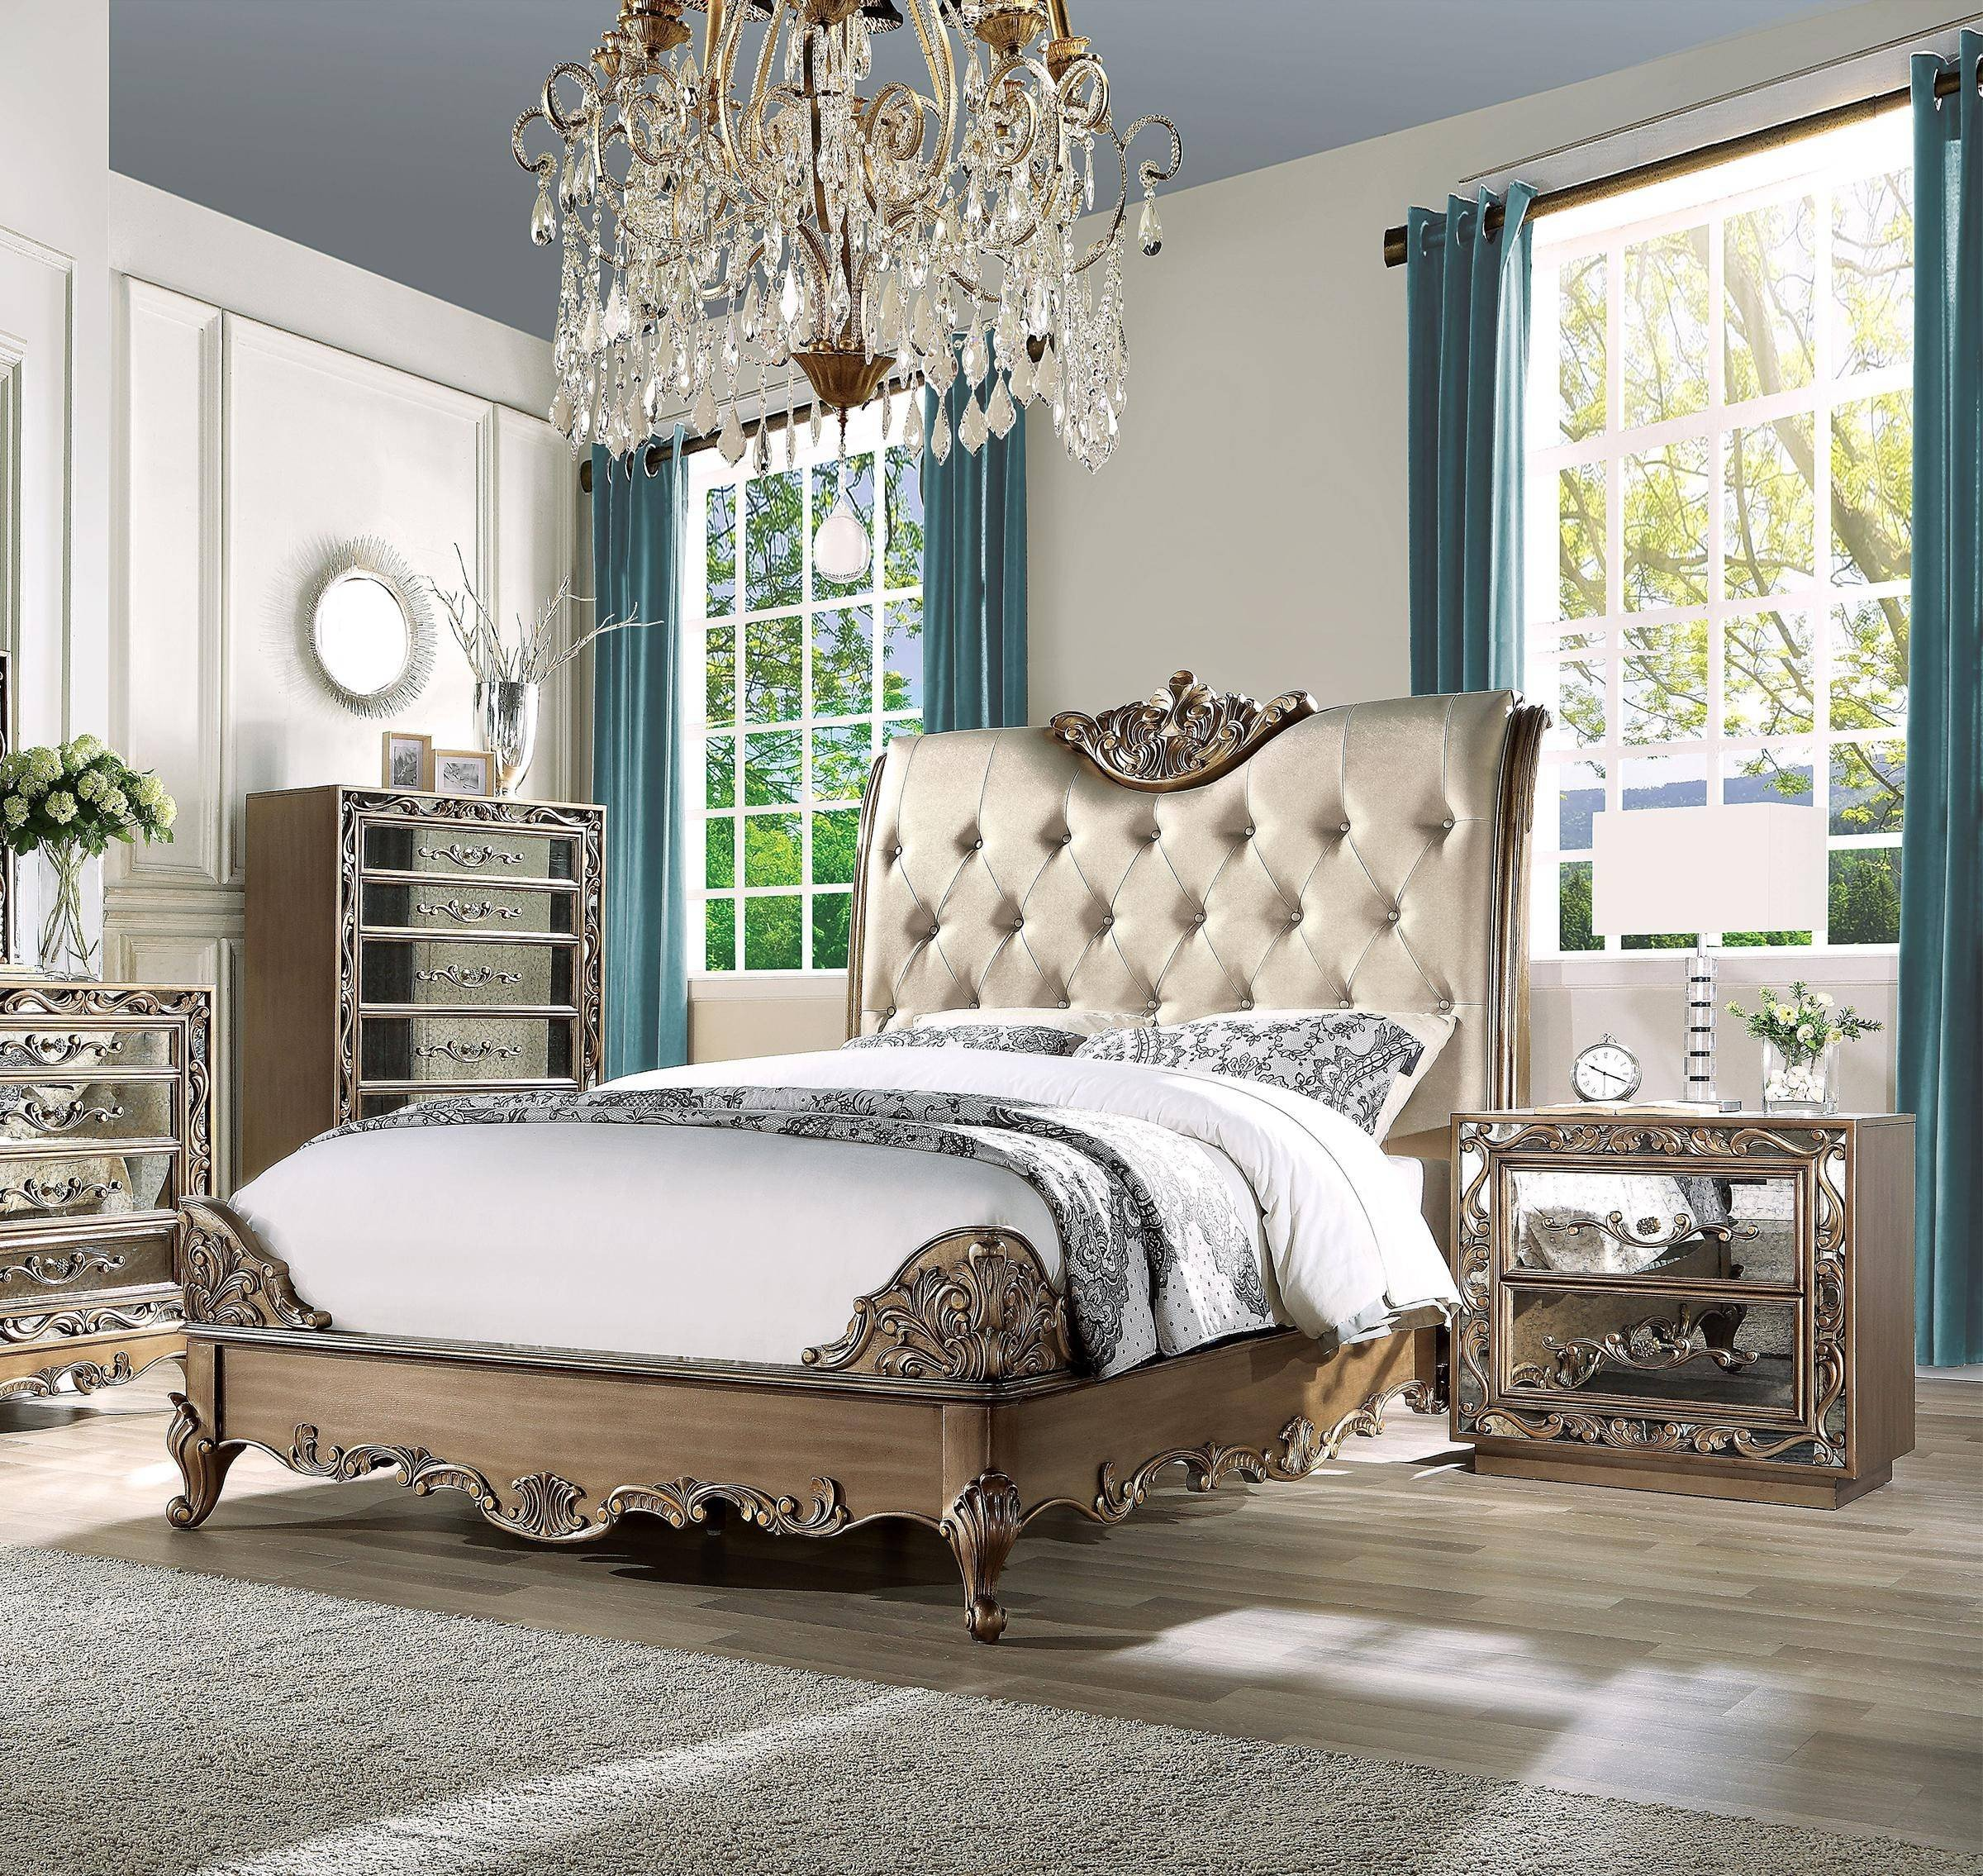 King Bedroom Set with Mattress Fresh Luxury King Bedroom Set 3 Antique Gold Champagne F Leather